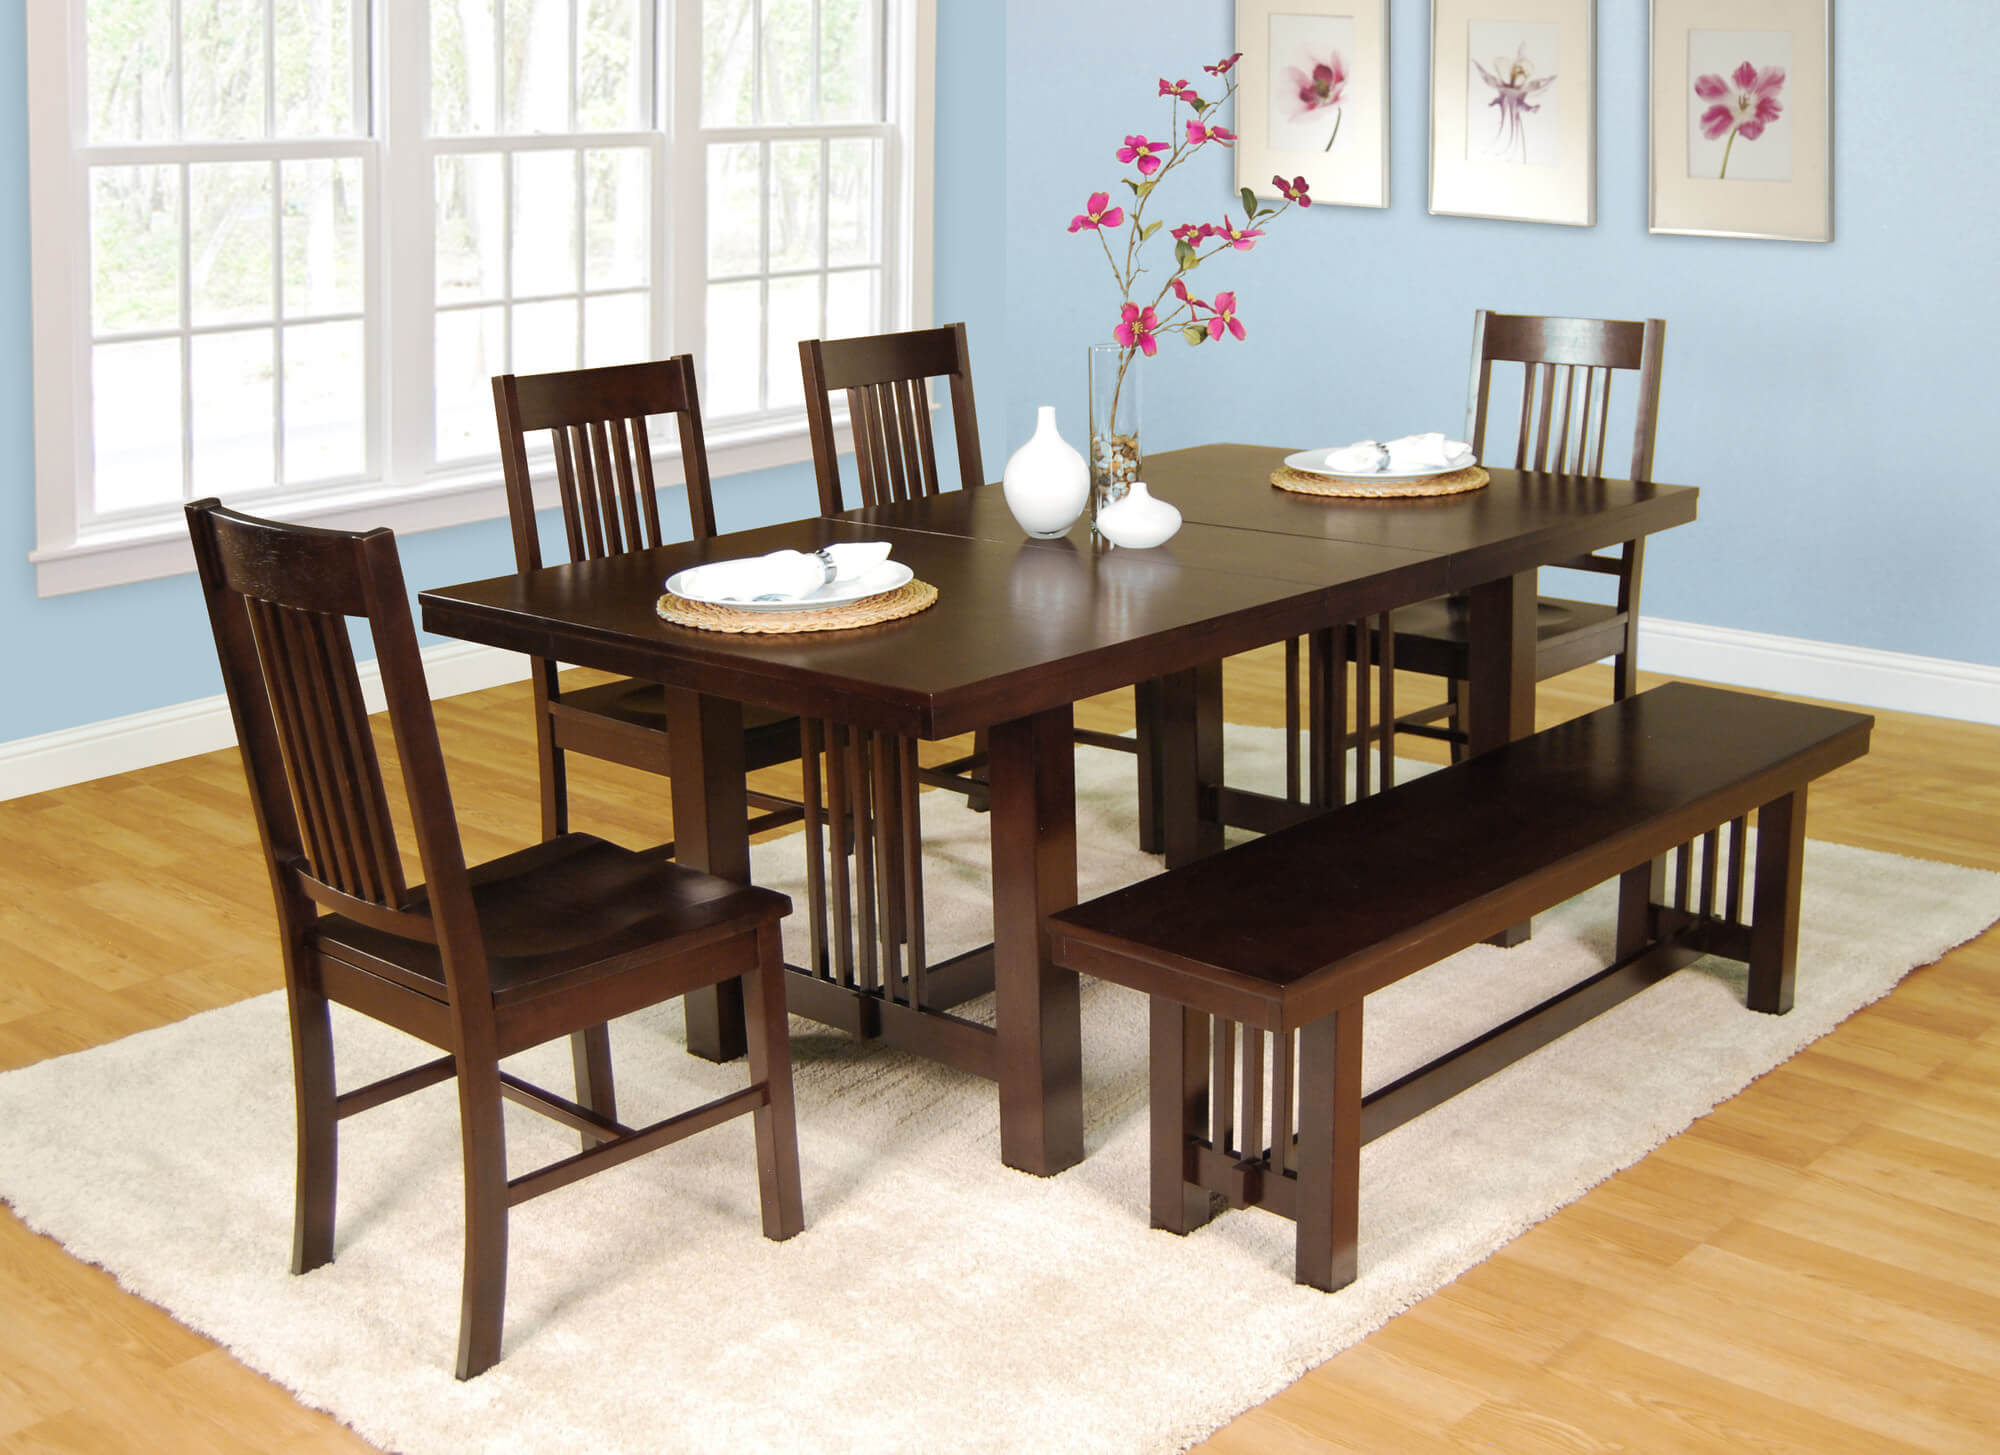 Hereu0027s A Very Solid Dining Set With Bench. Table Can Be Extended With A  Center Design Inspirations